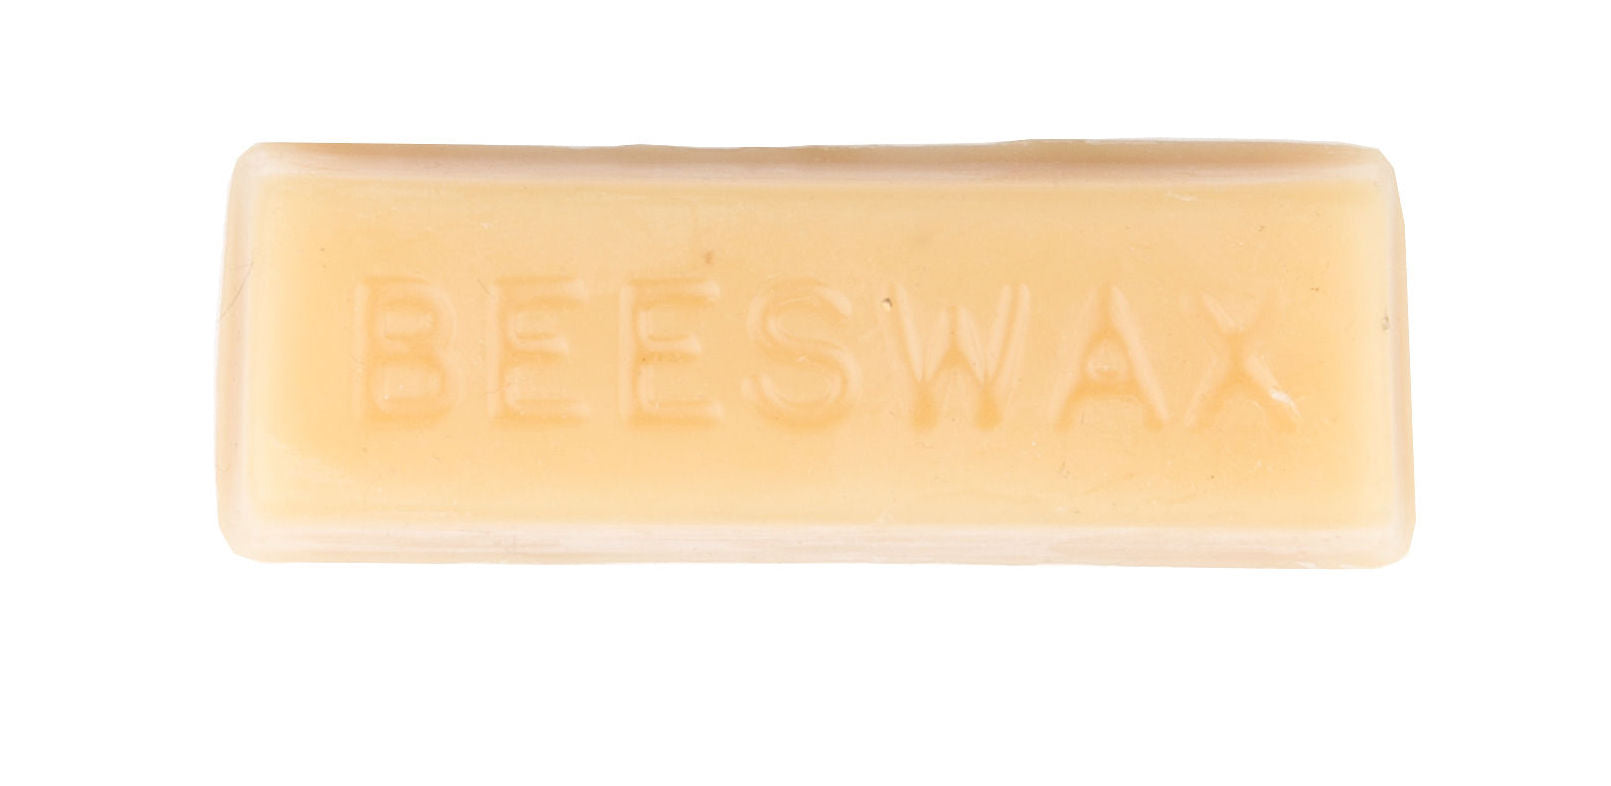 "Pictured is a rectangular block of hard wax. Printed into it is the word ""BEESWAX."""